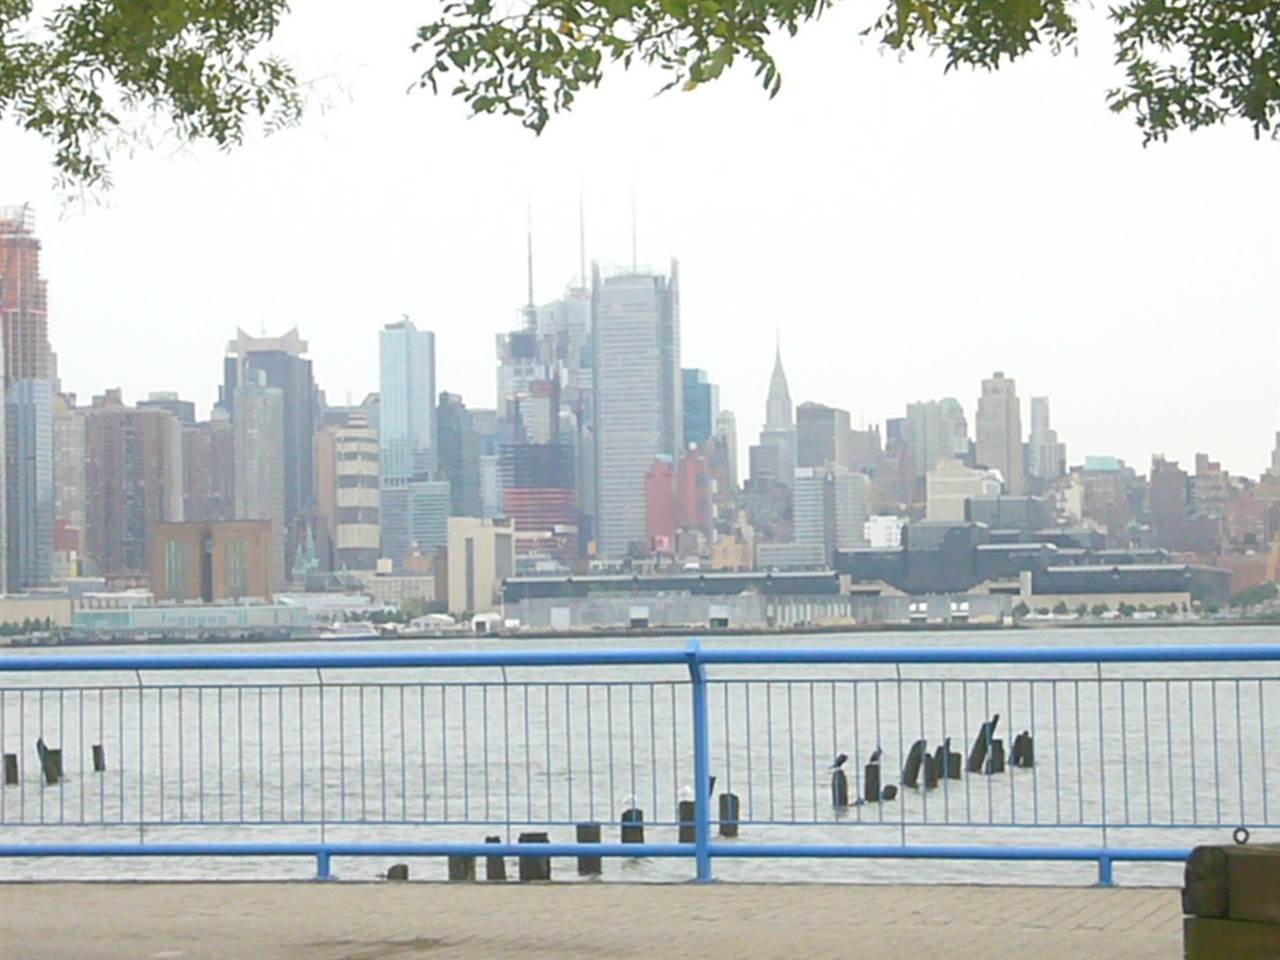 600 HARBOR BLVD 807, Weehawken, NJ 07086